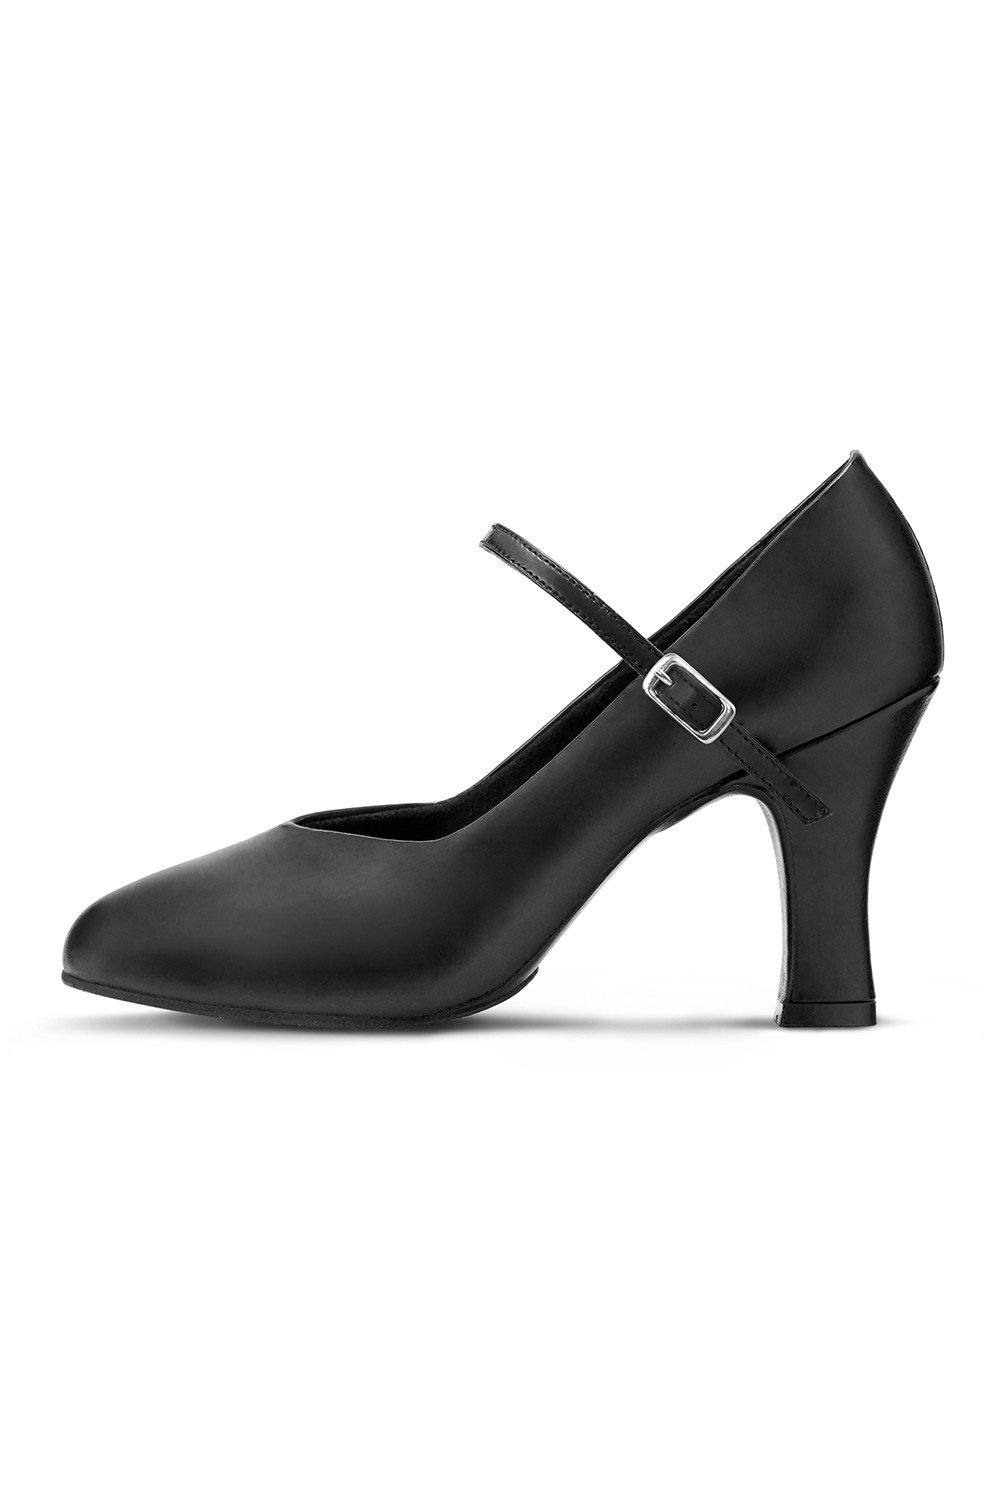 Broadway-alto Women's Character Shoes